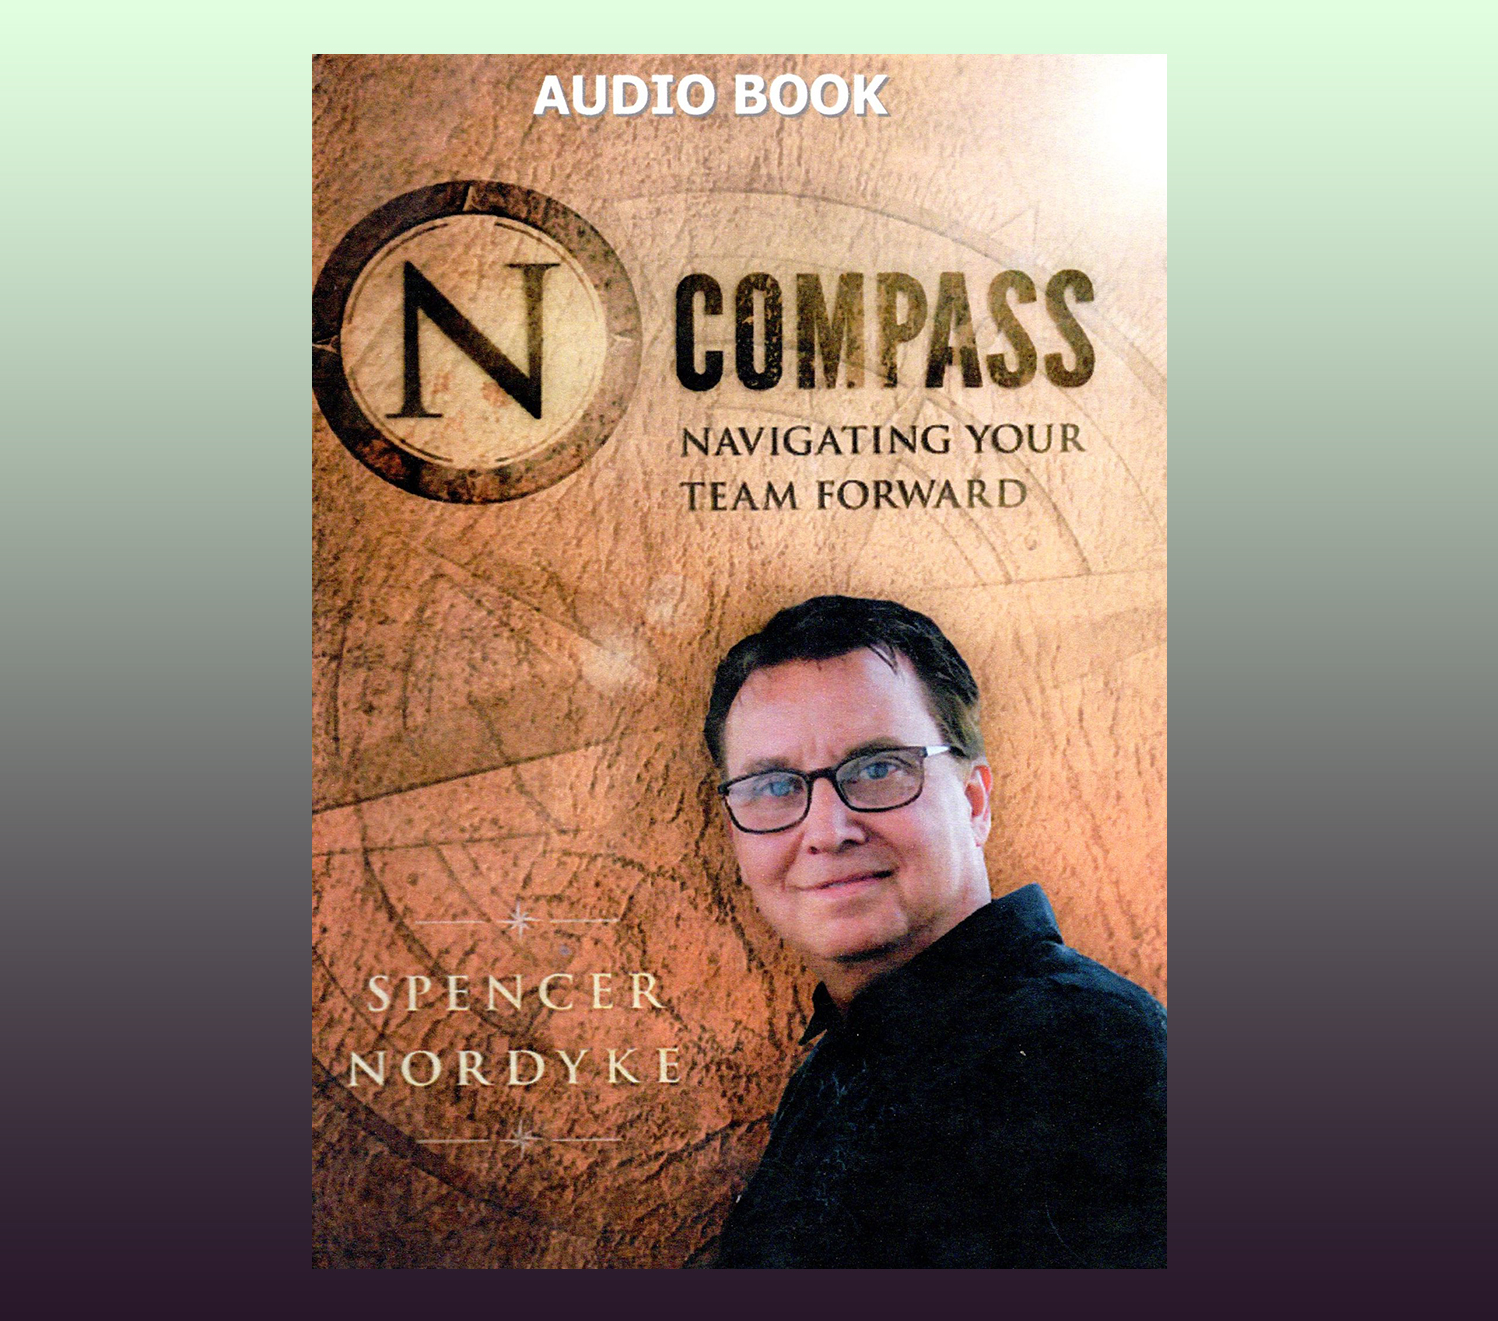 N-Compass Book Audio Book